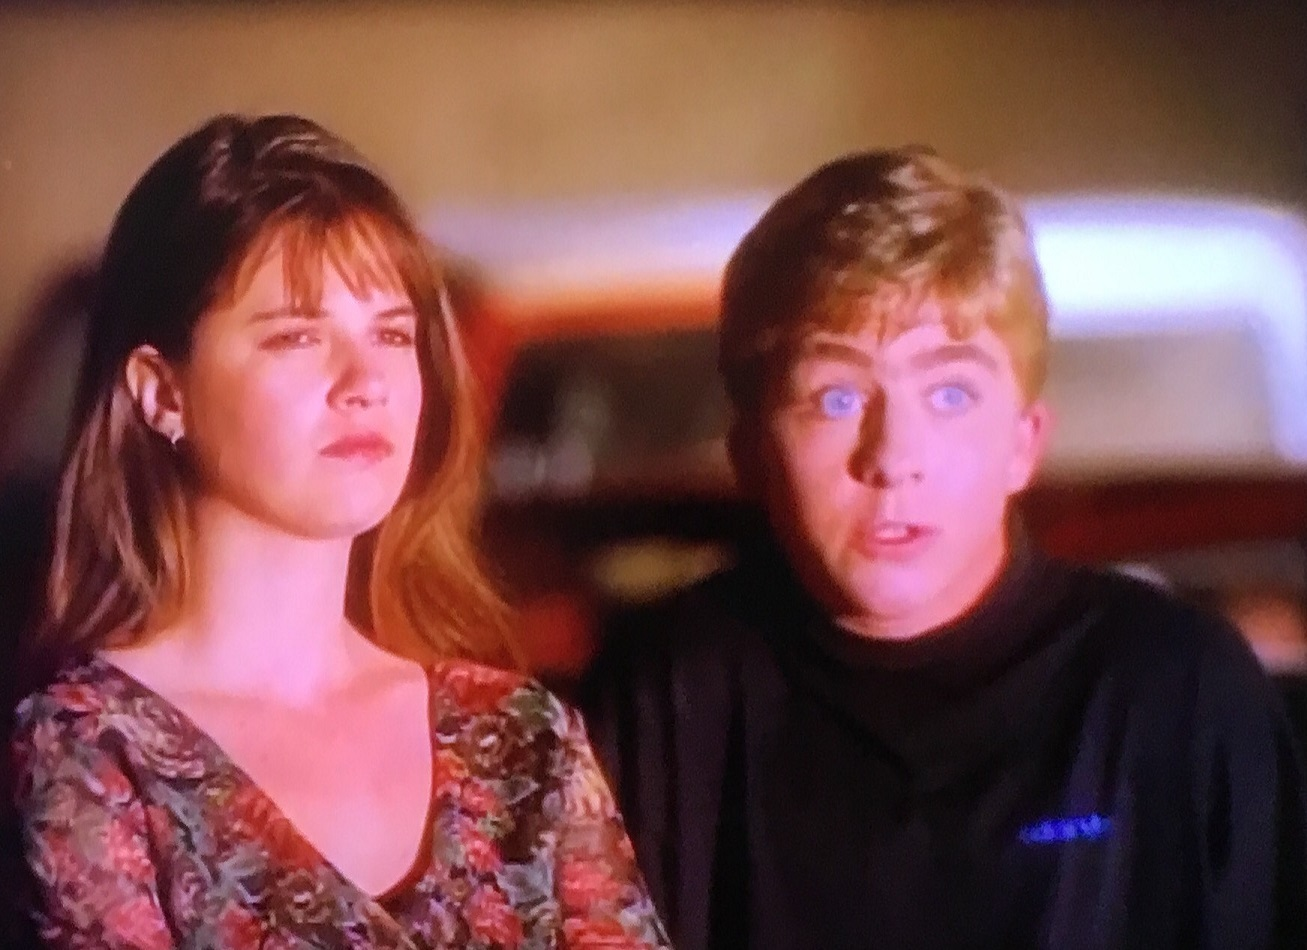 Megan Ward, Peter Billiingsley in Arcade (1994)